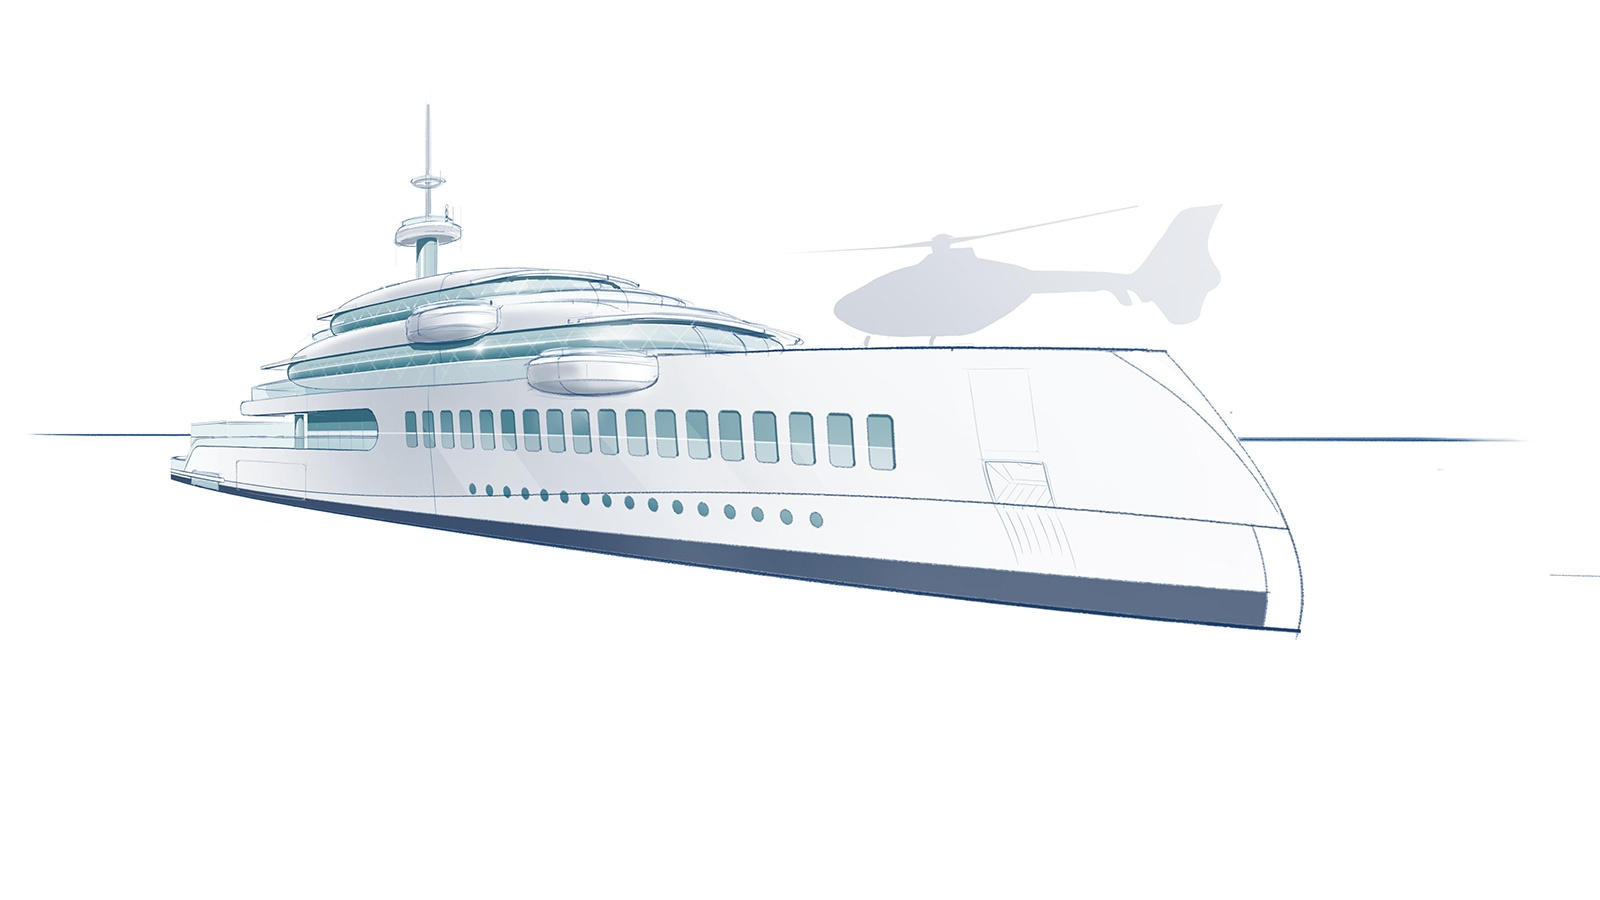 65m Feadship superyacht concept Silence with plastic removal system